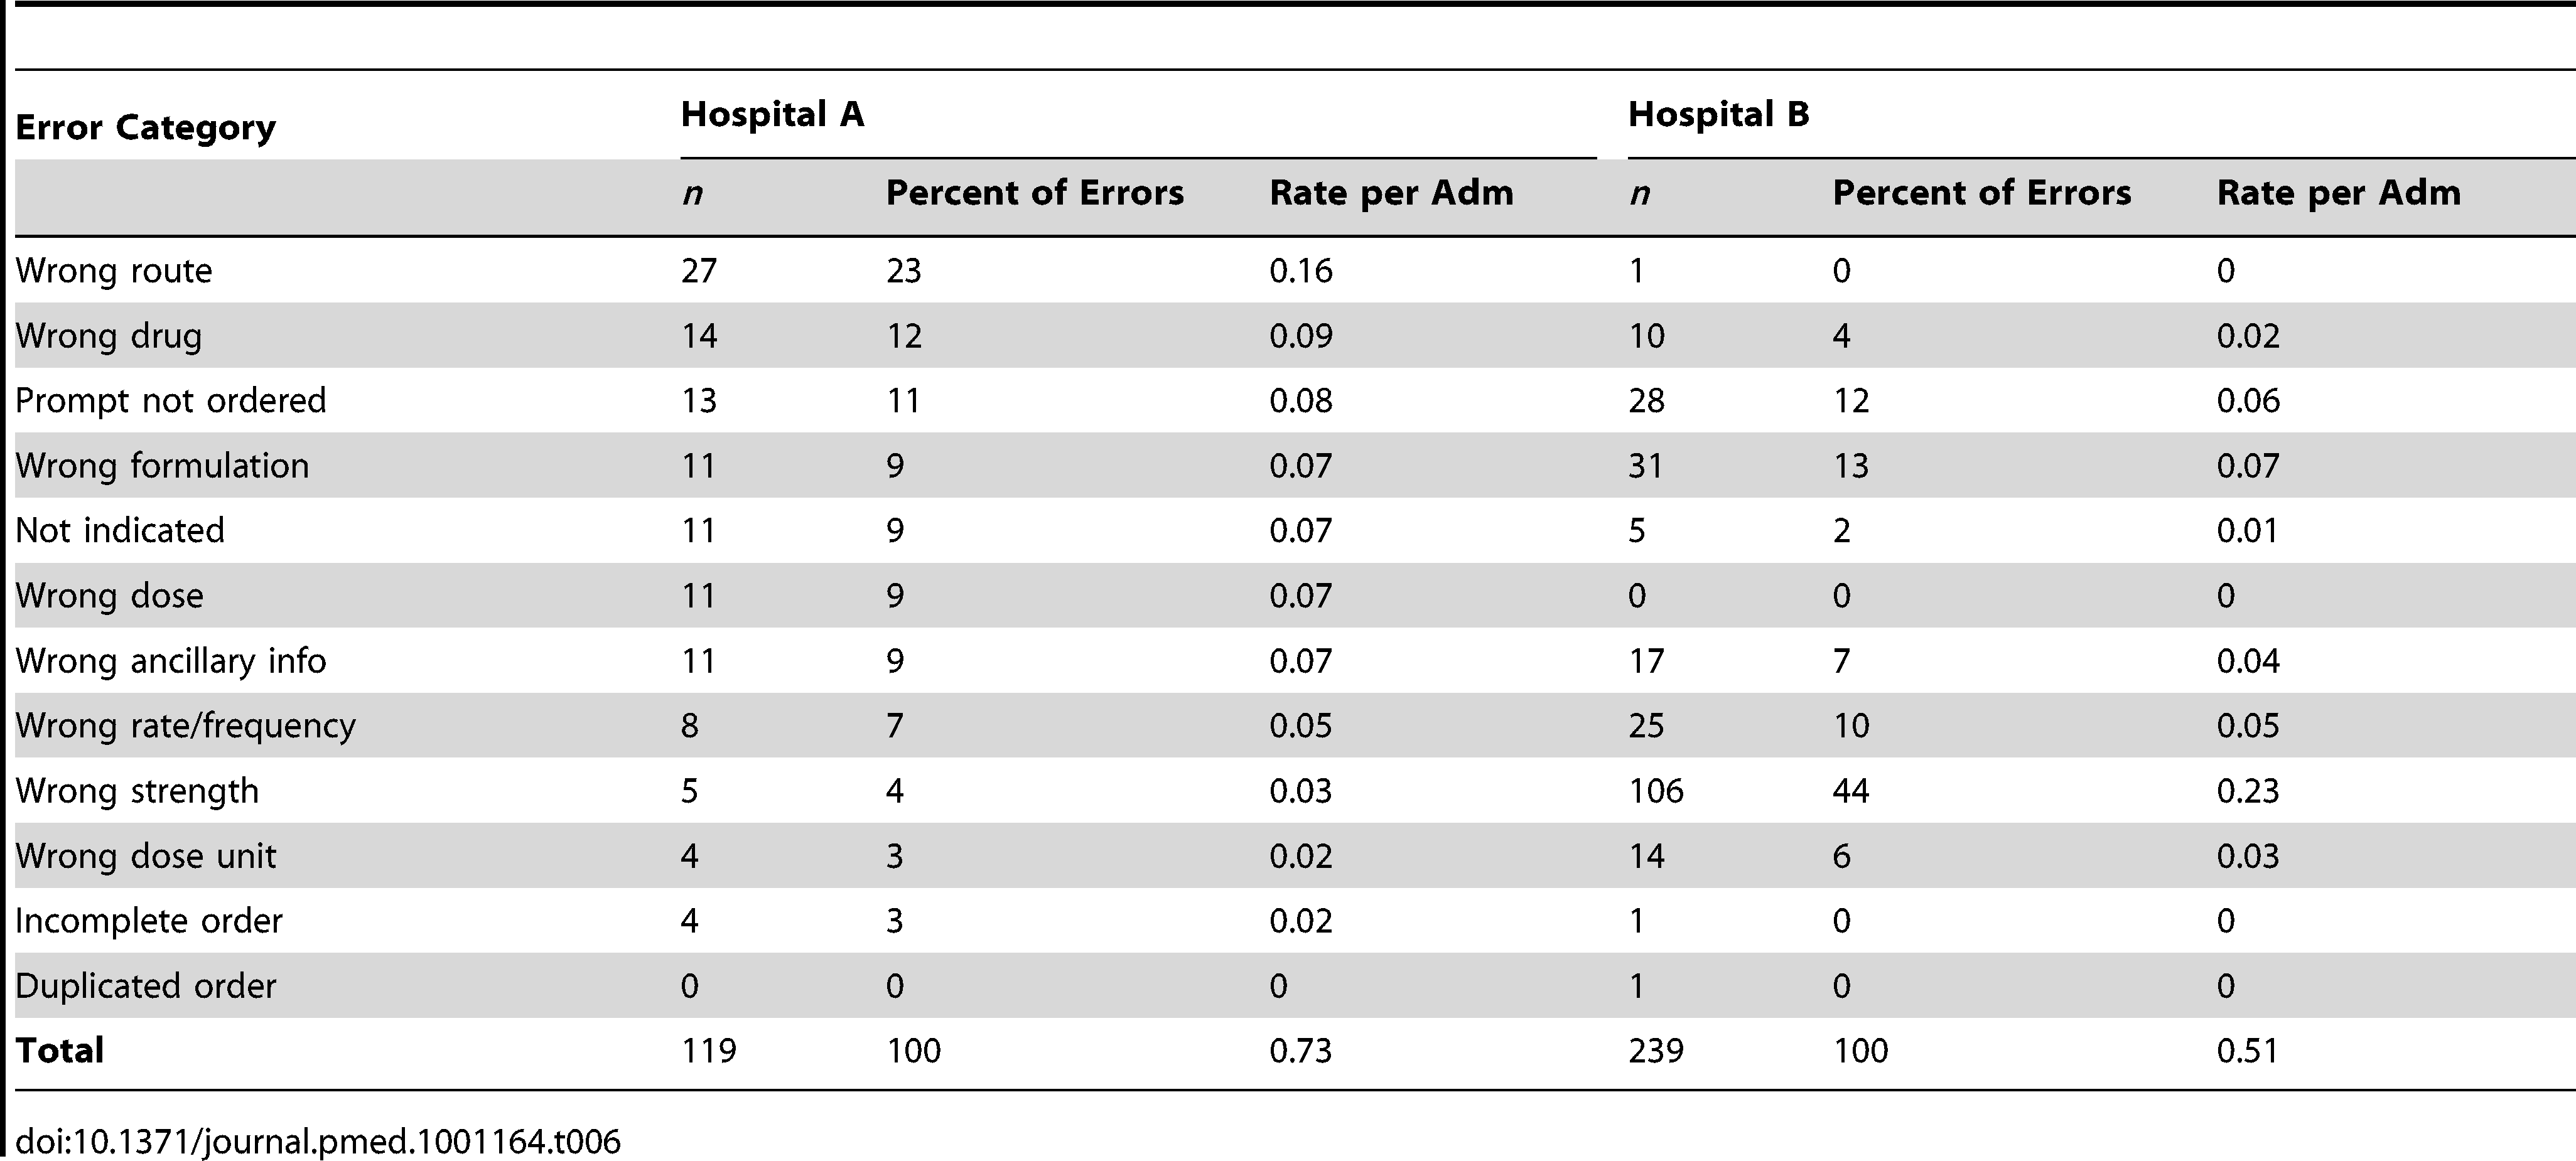 The manifestation of system-related prescribing error rates by type and hospital.